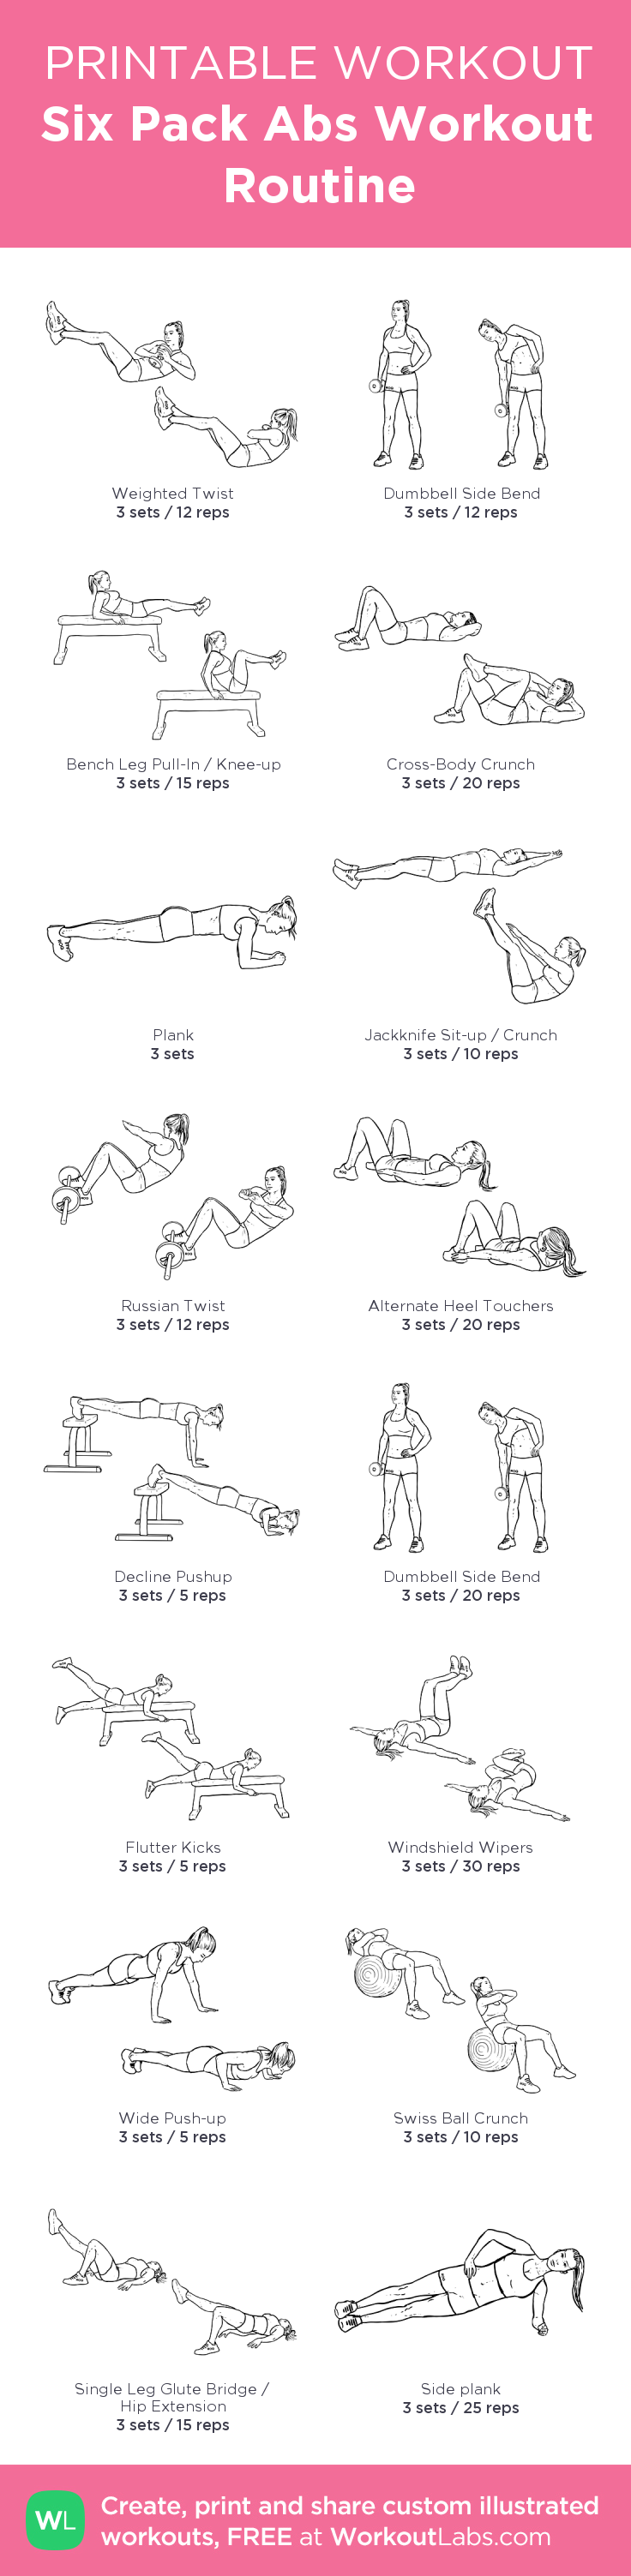 photograph about Printable Ab Workouts known as 6 Pack Stomach muscles Exercise Program: my customized printable exercise routine by way of